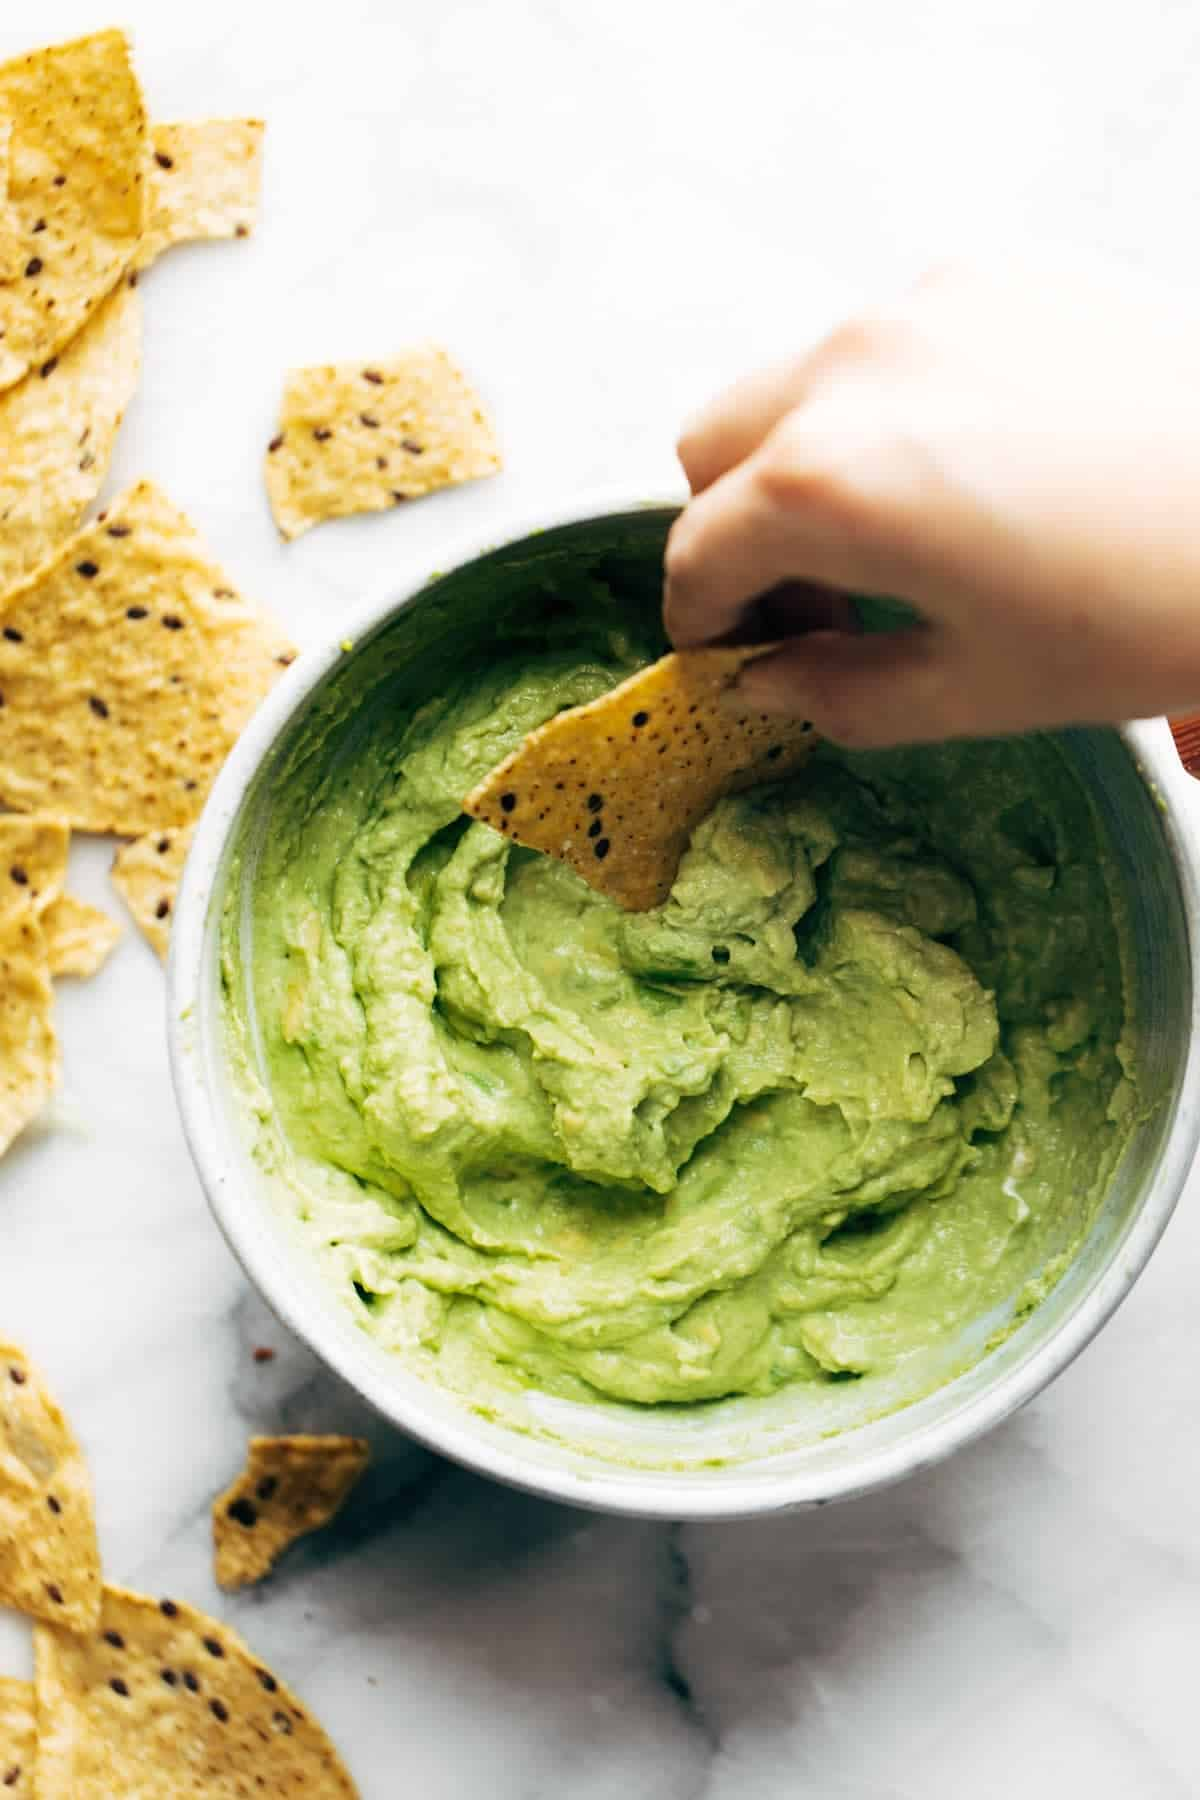 healthy snack ideas, creamy avocado dip